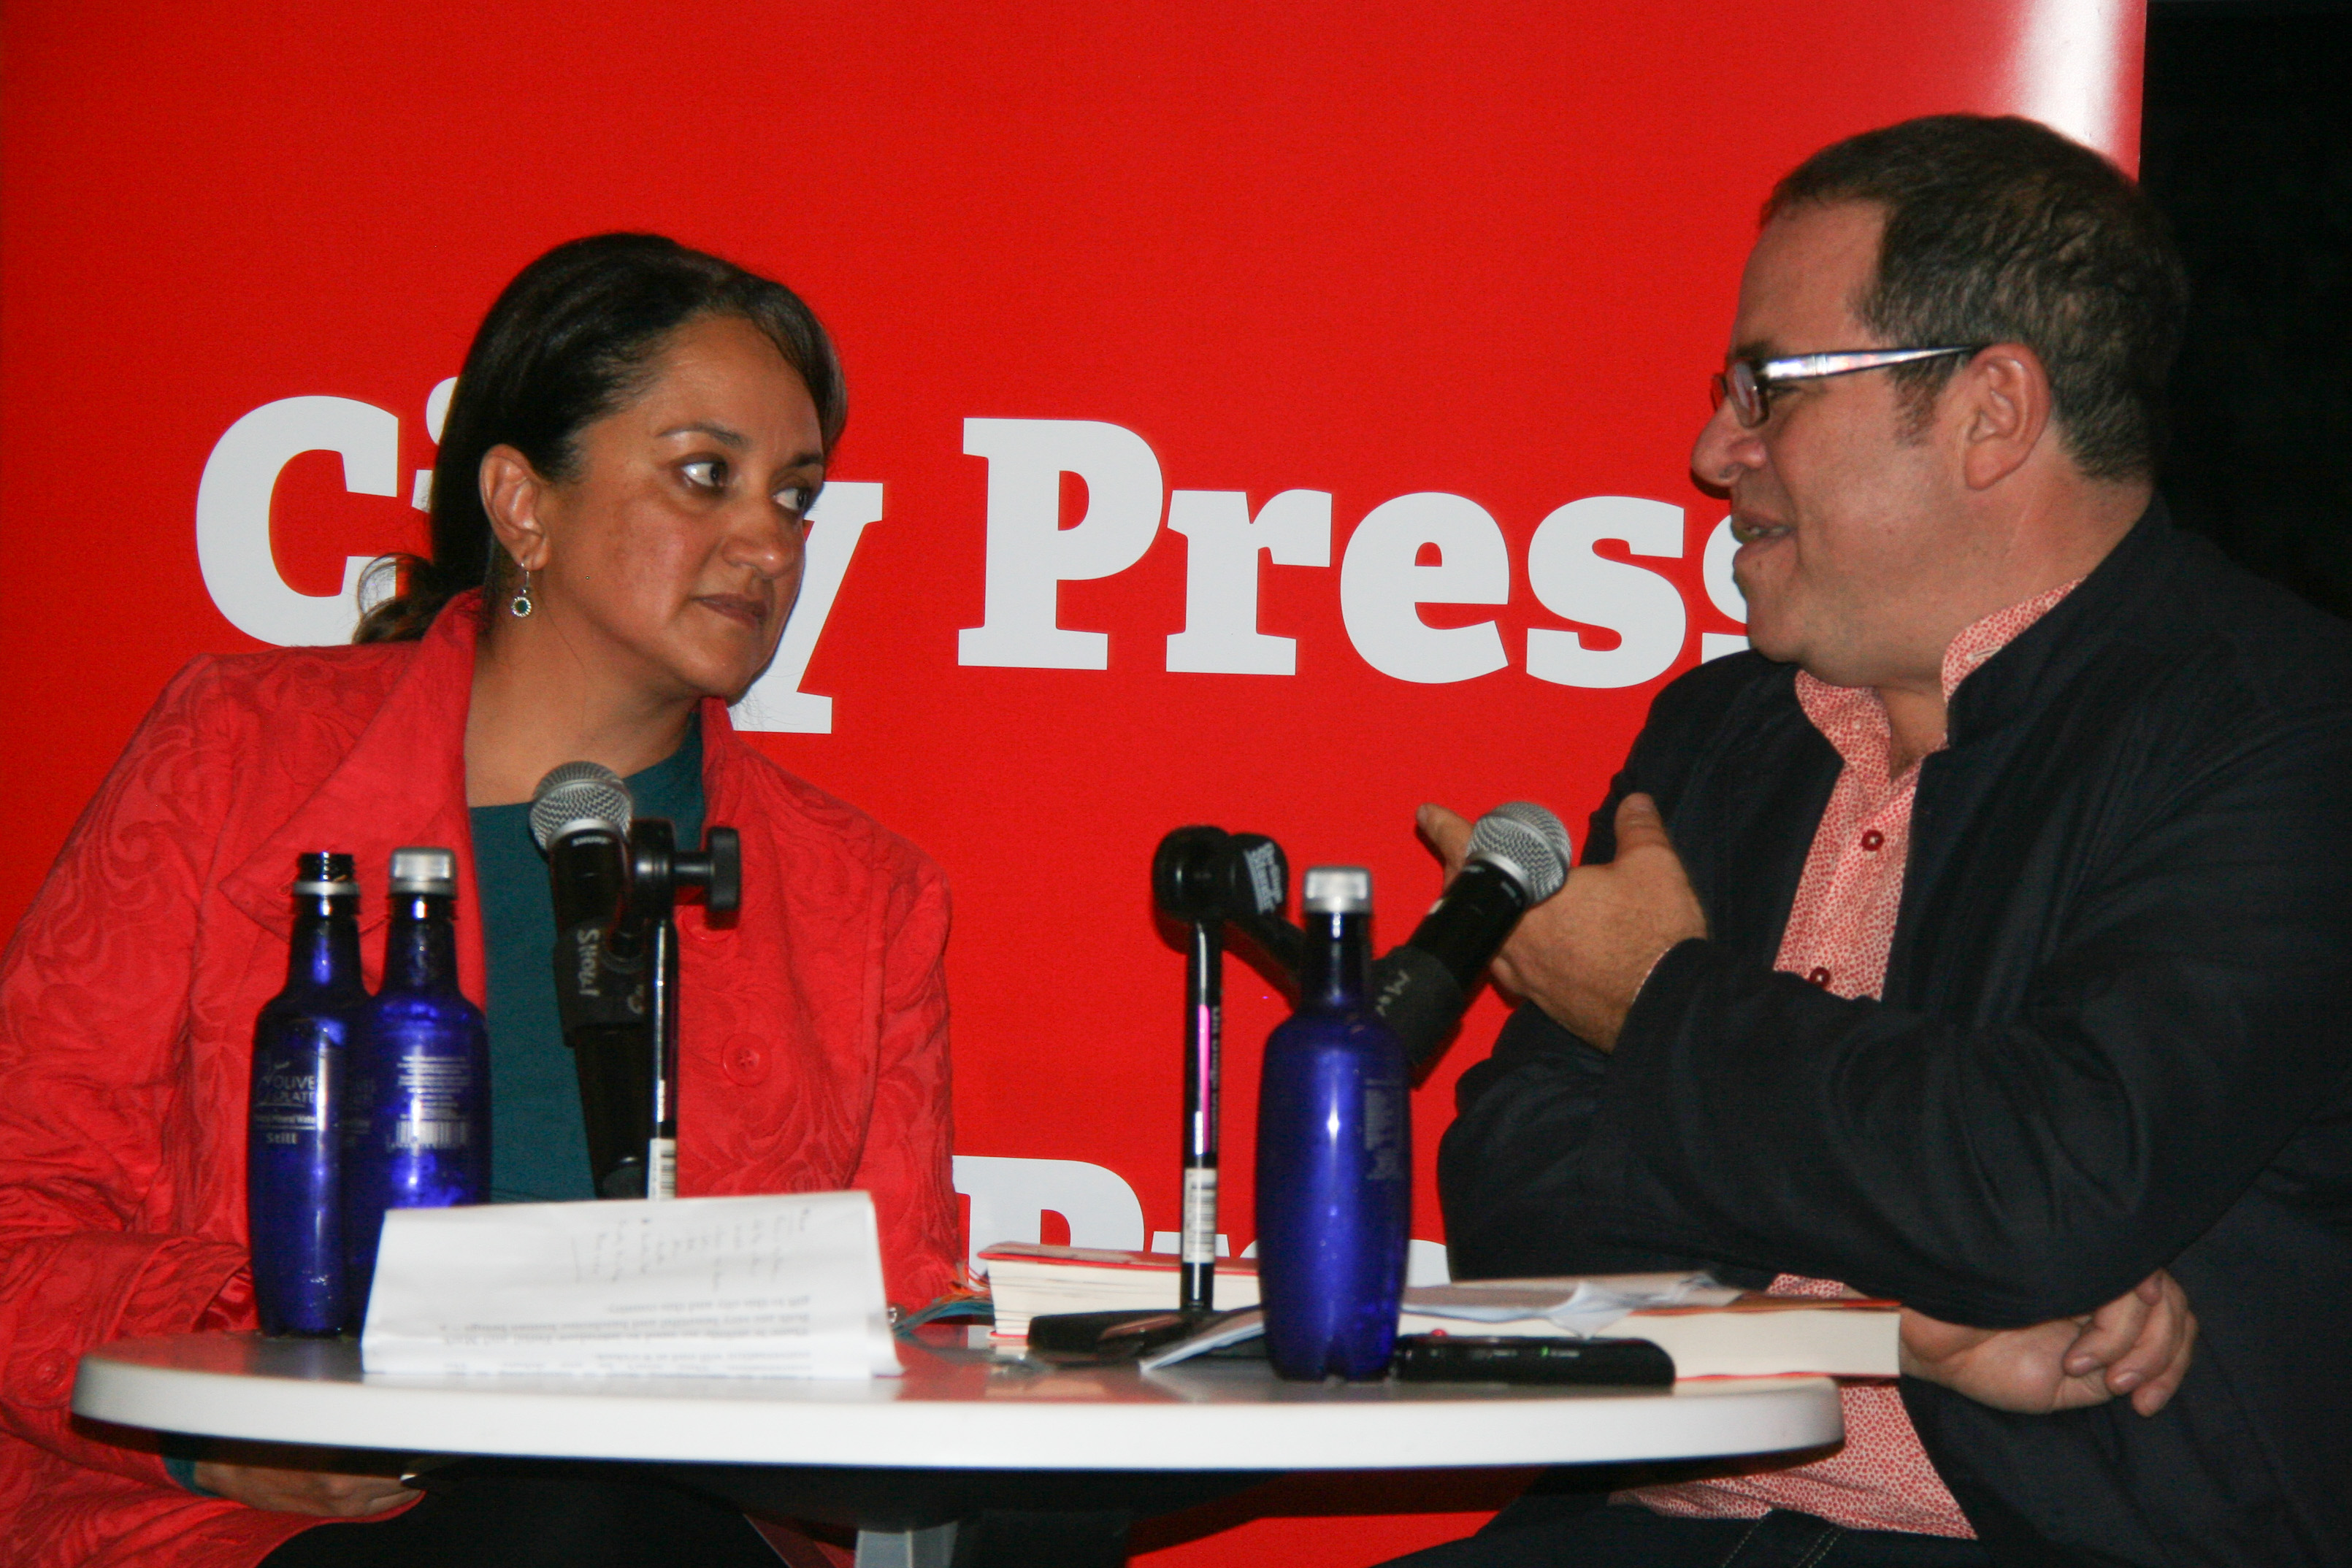 IN CONVERSATION: City Press editor Ferial Haffajee and Mark Gevisser, both born and riased in different and diverse parts of Johannesburg, discussion the uniqueness of the city. Photo: Zelmarie Goosen.